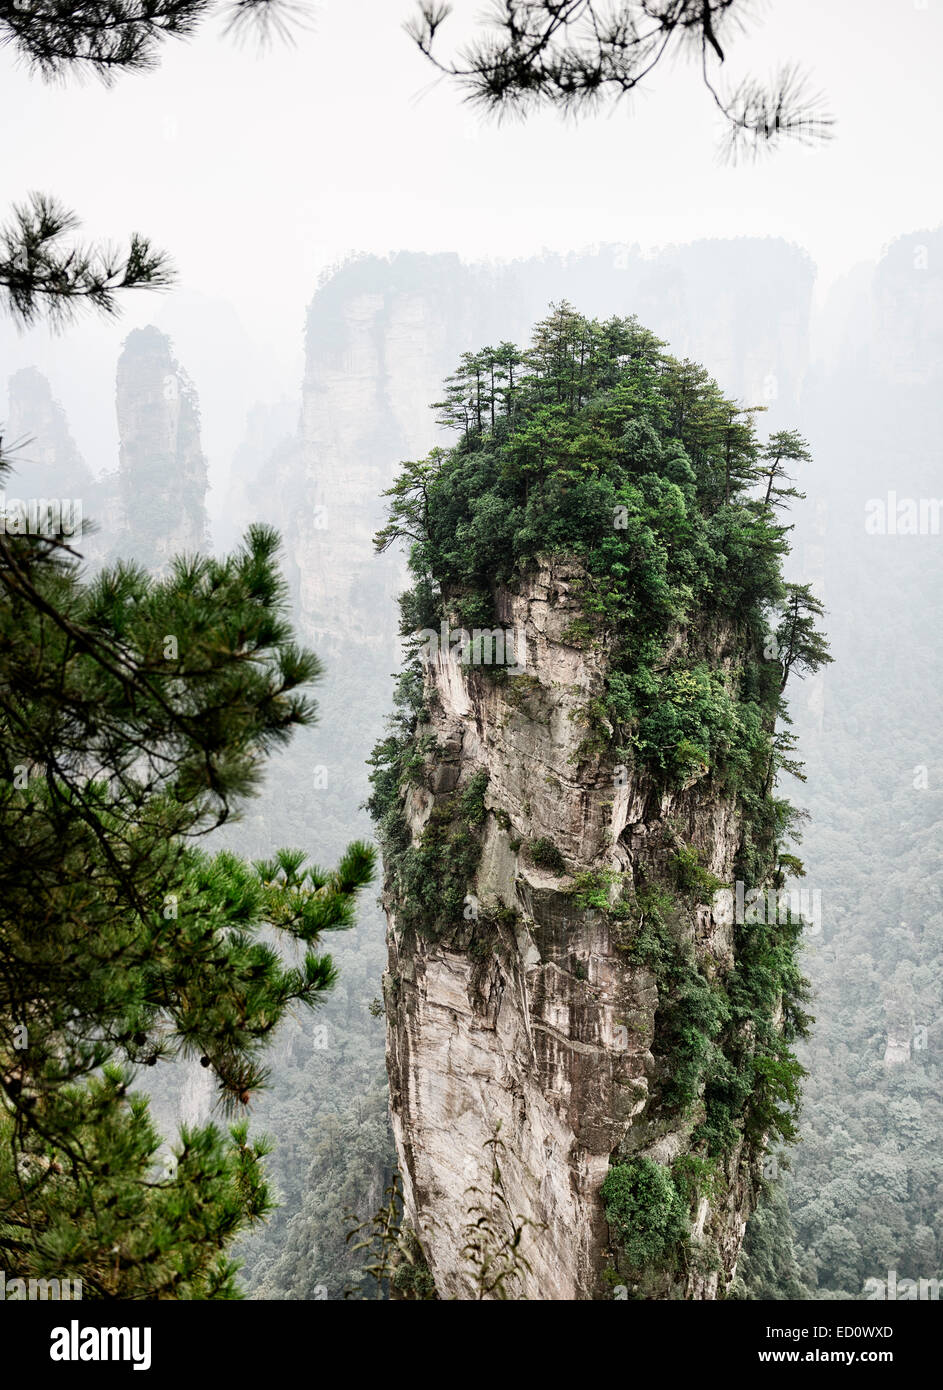 Mountain spire at Zhangjiajie National Forest Park, figgy nature scenery, Zhangjiajie, Hunan, China - Stock Image